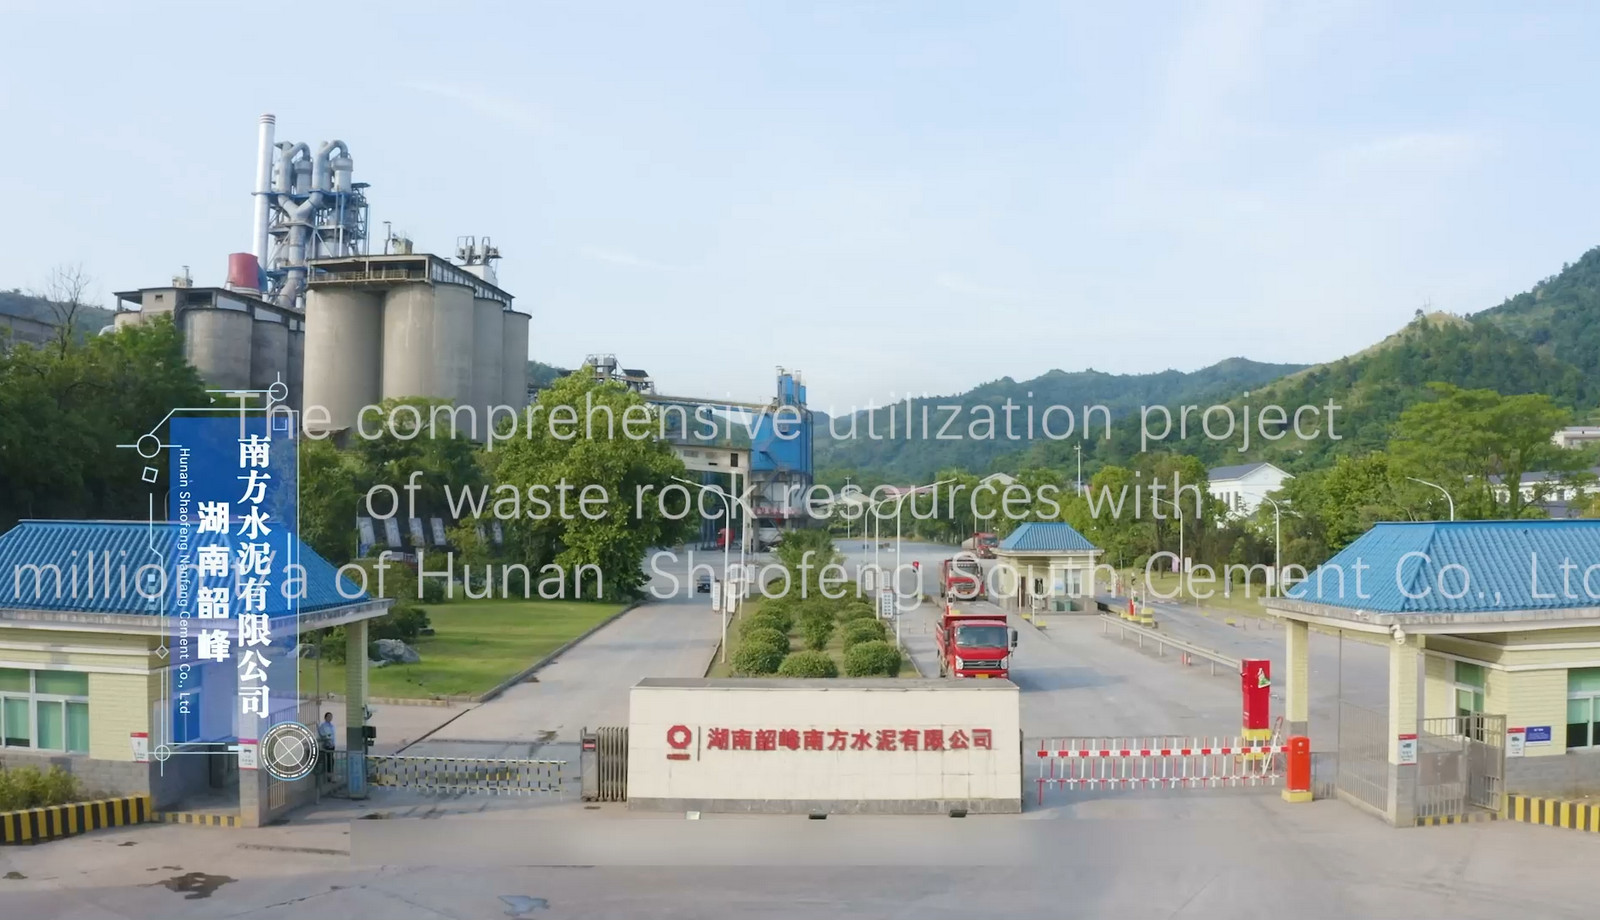 2 million t/a Project of Hunan Shaofeng South Cement